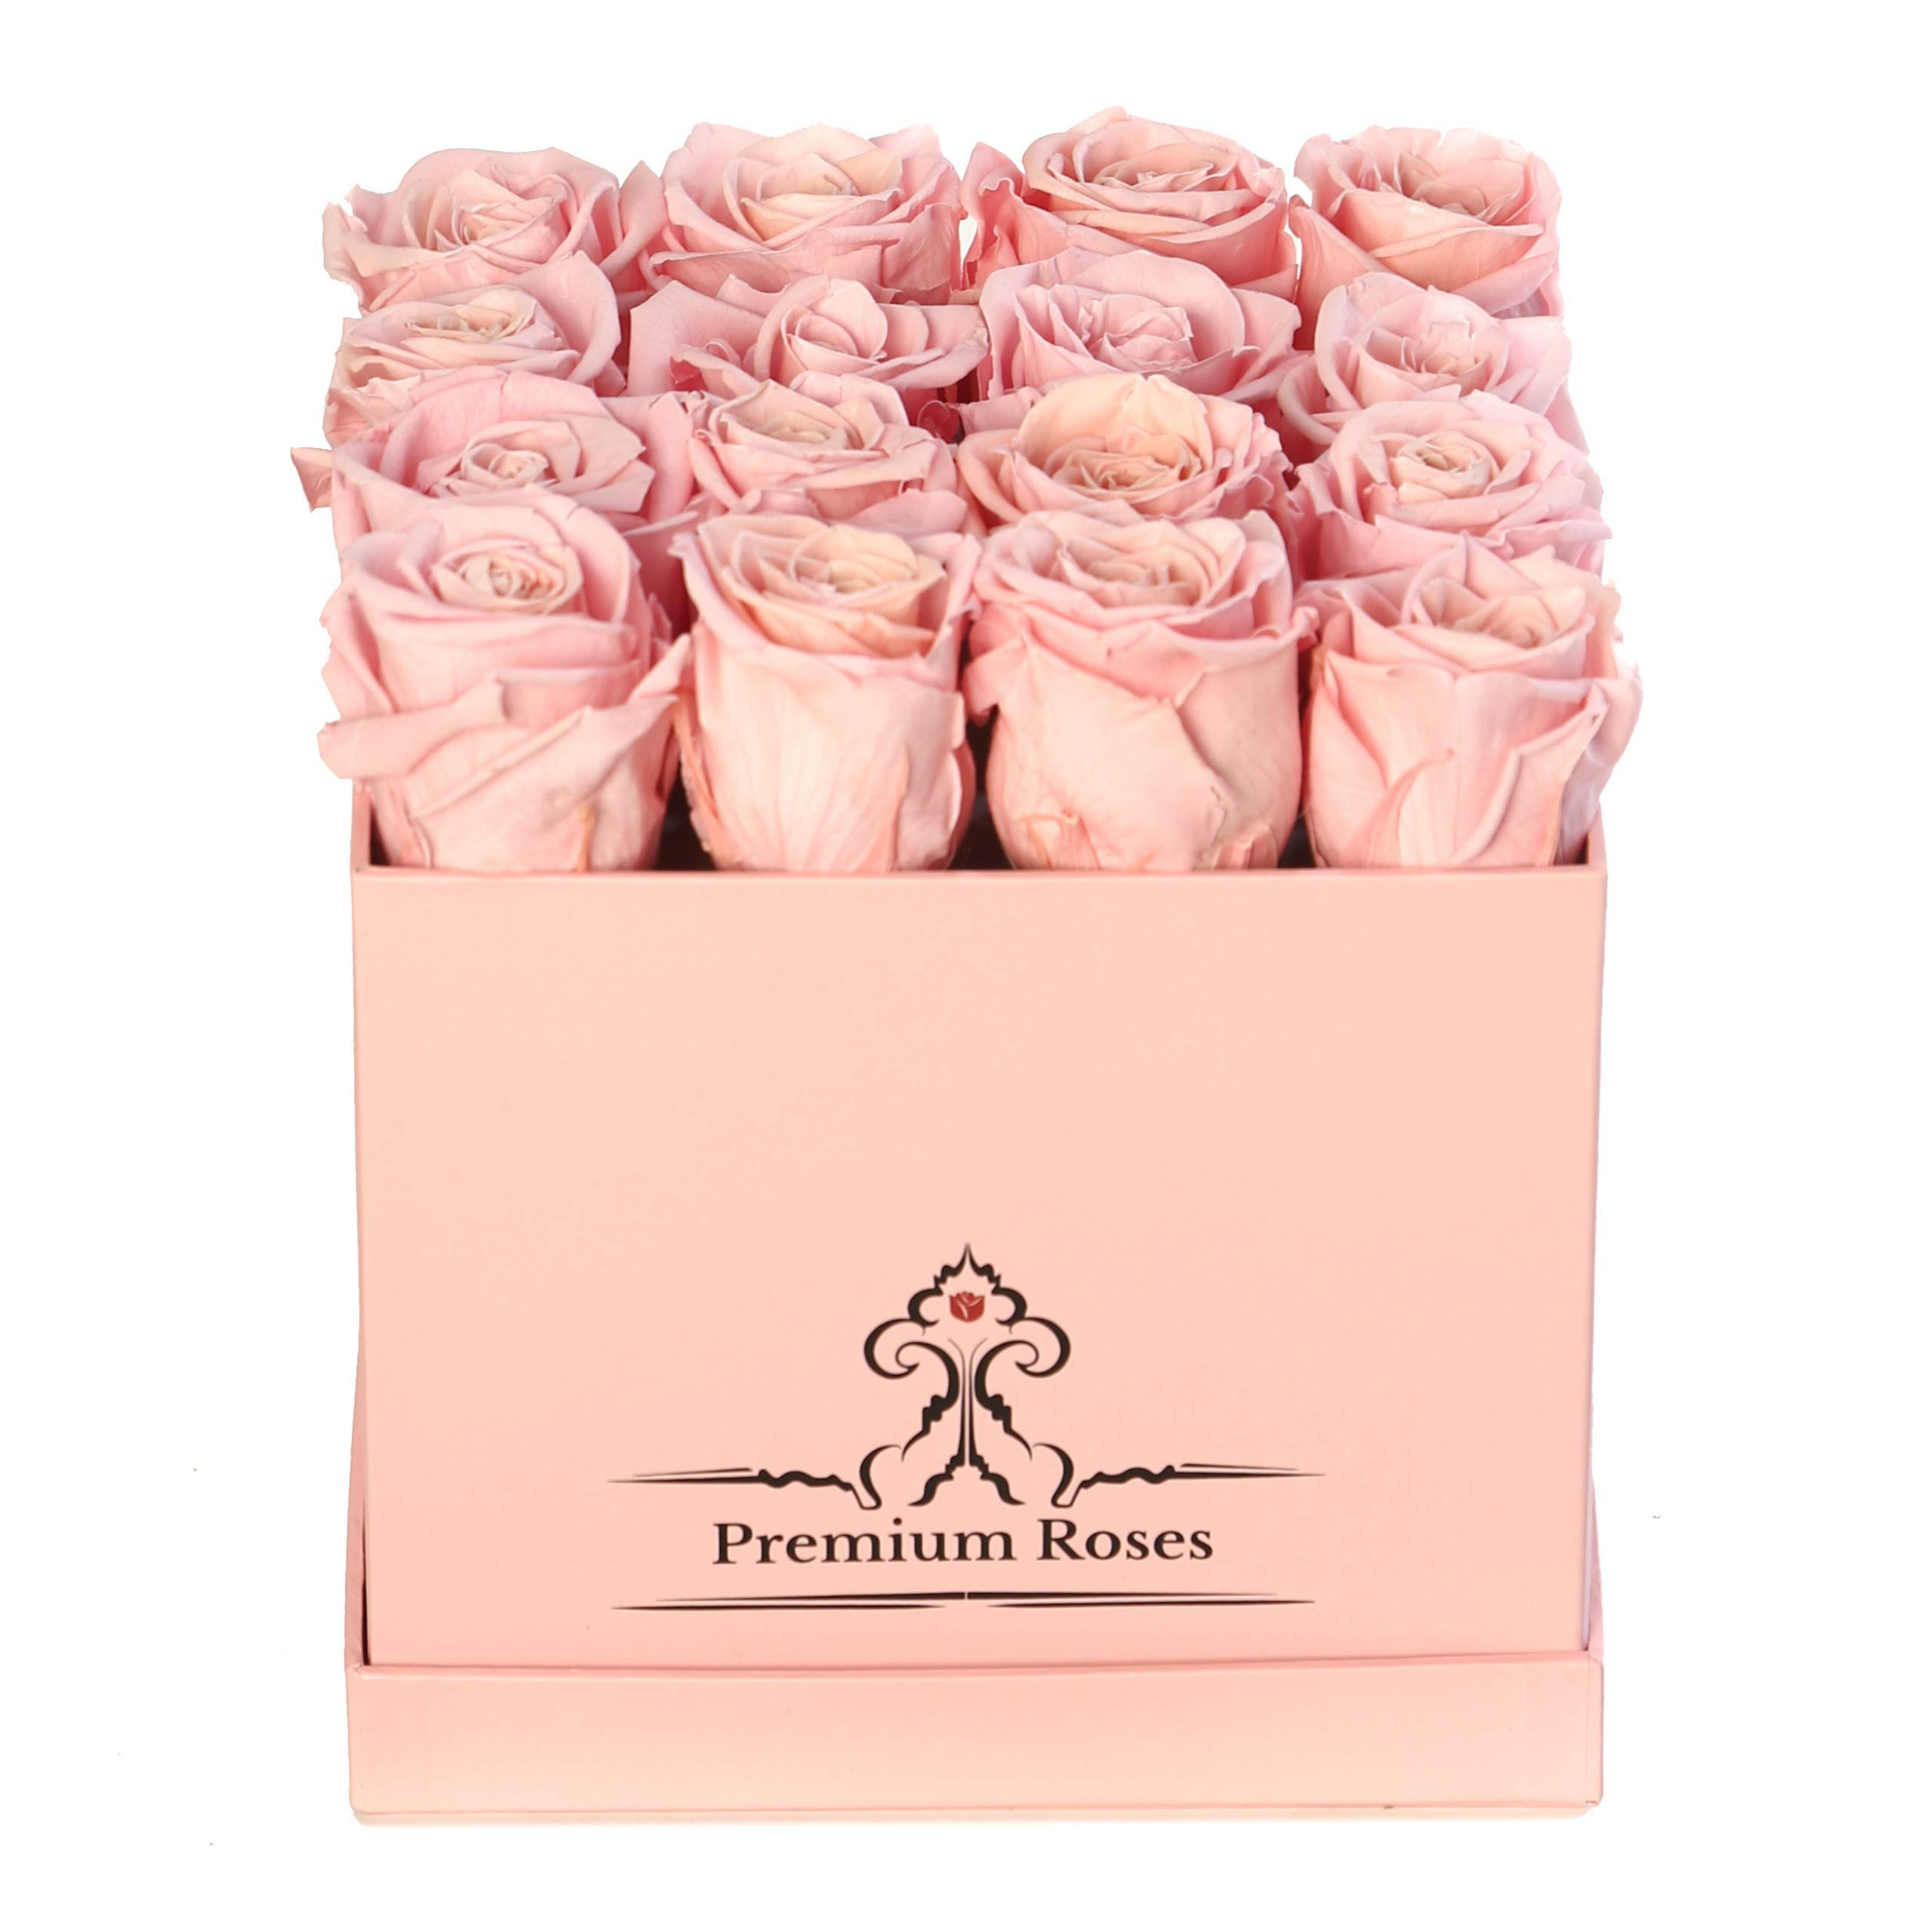 Premium Roses | Model Pink| Real Roses That Last 365 Days | Fresh Flowers| Roses in a Box (Pink Box, Medium)